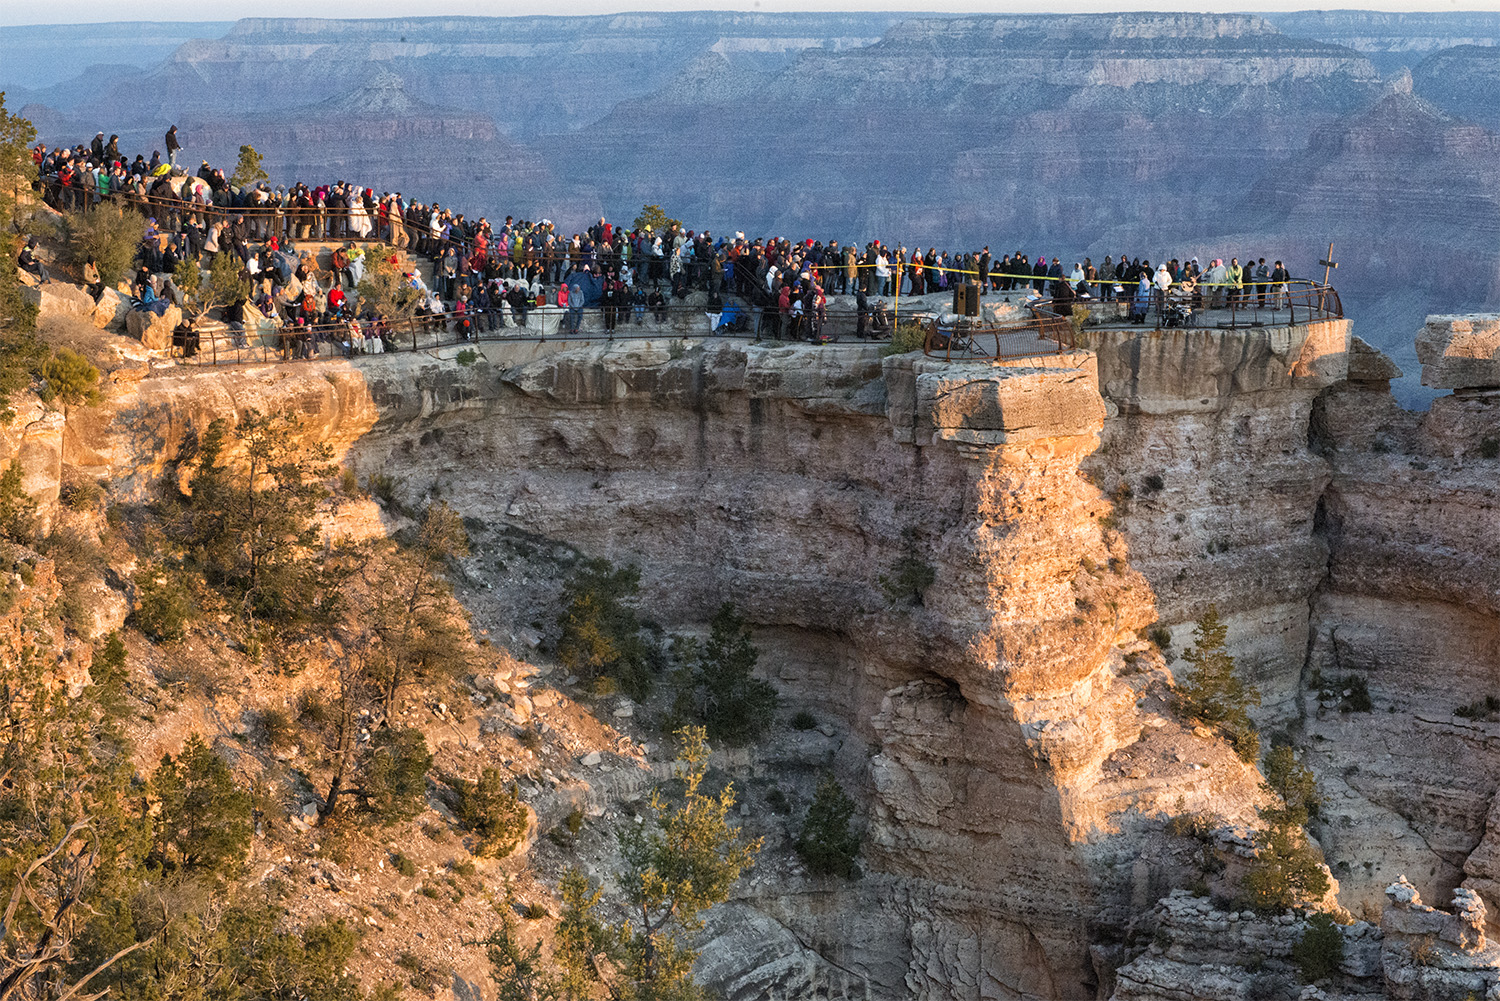 grand canyon christian dating site A christian geologist-turned-creationist, who claims grand canyon national park  christian geologist sues grand canyon for religious discrimination.